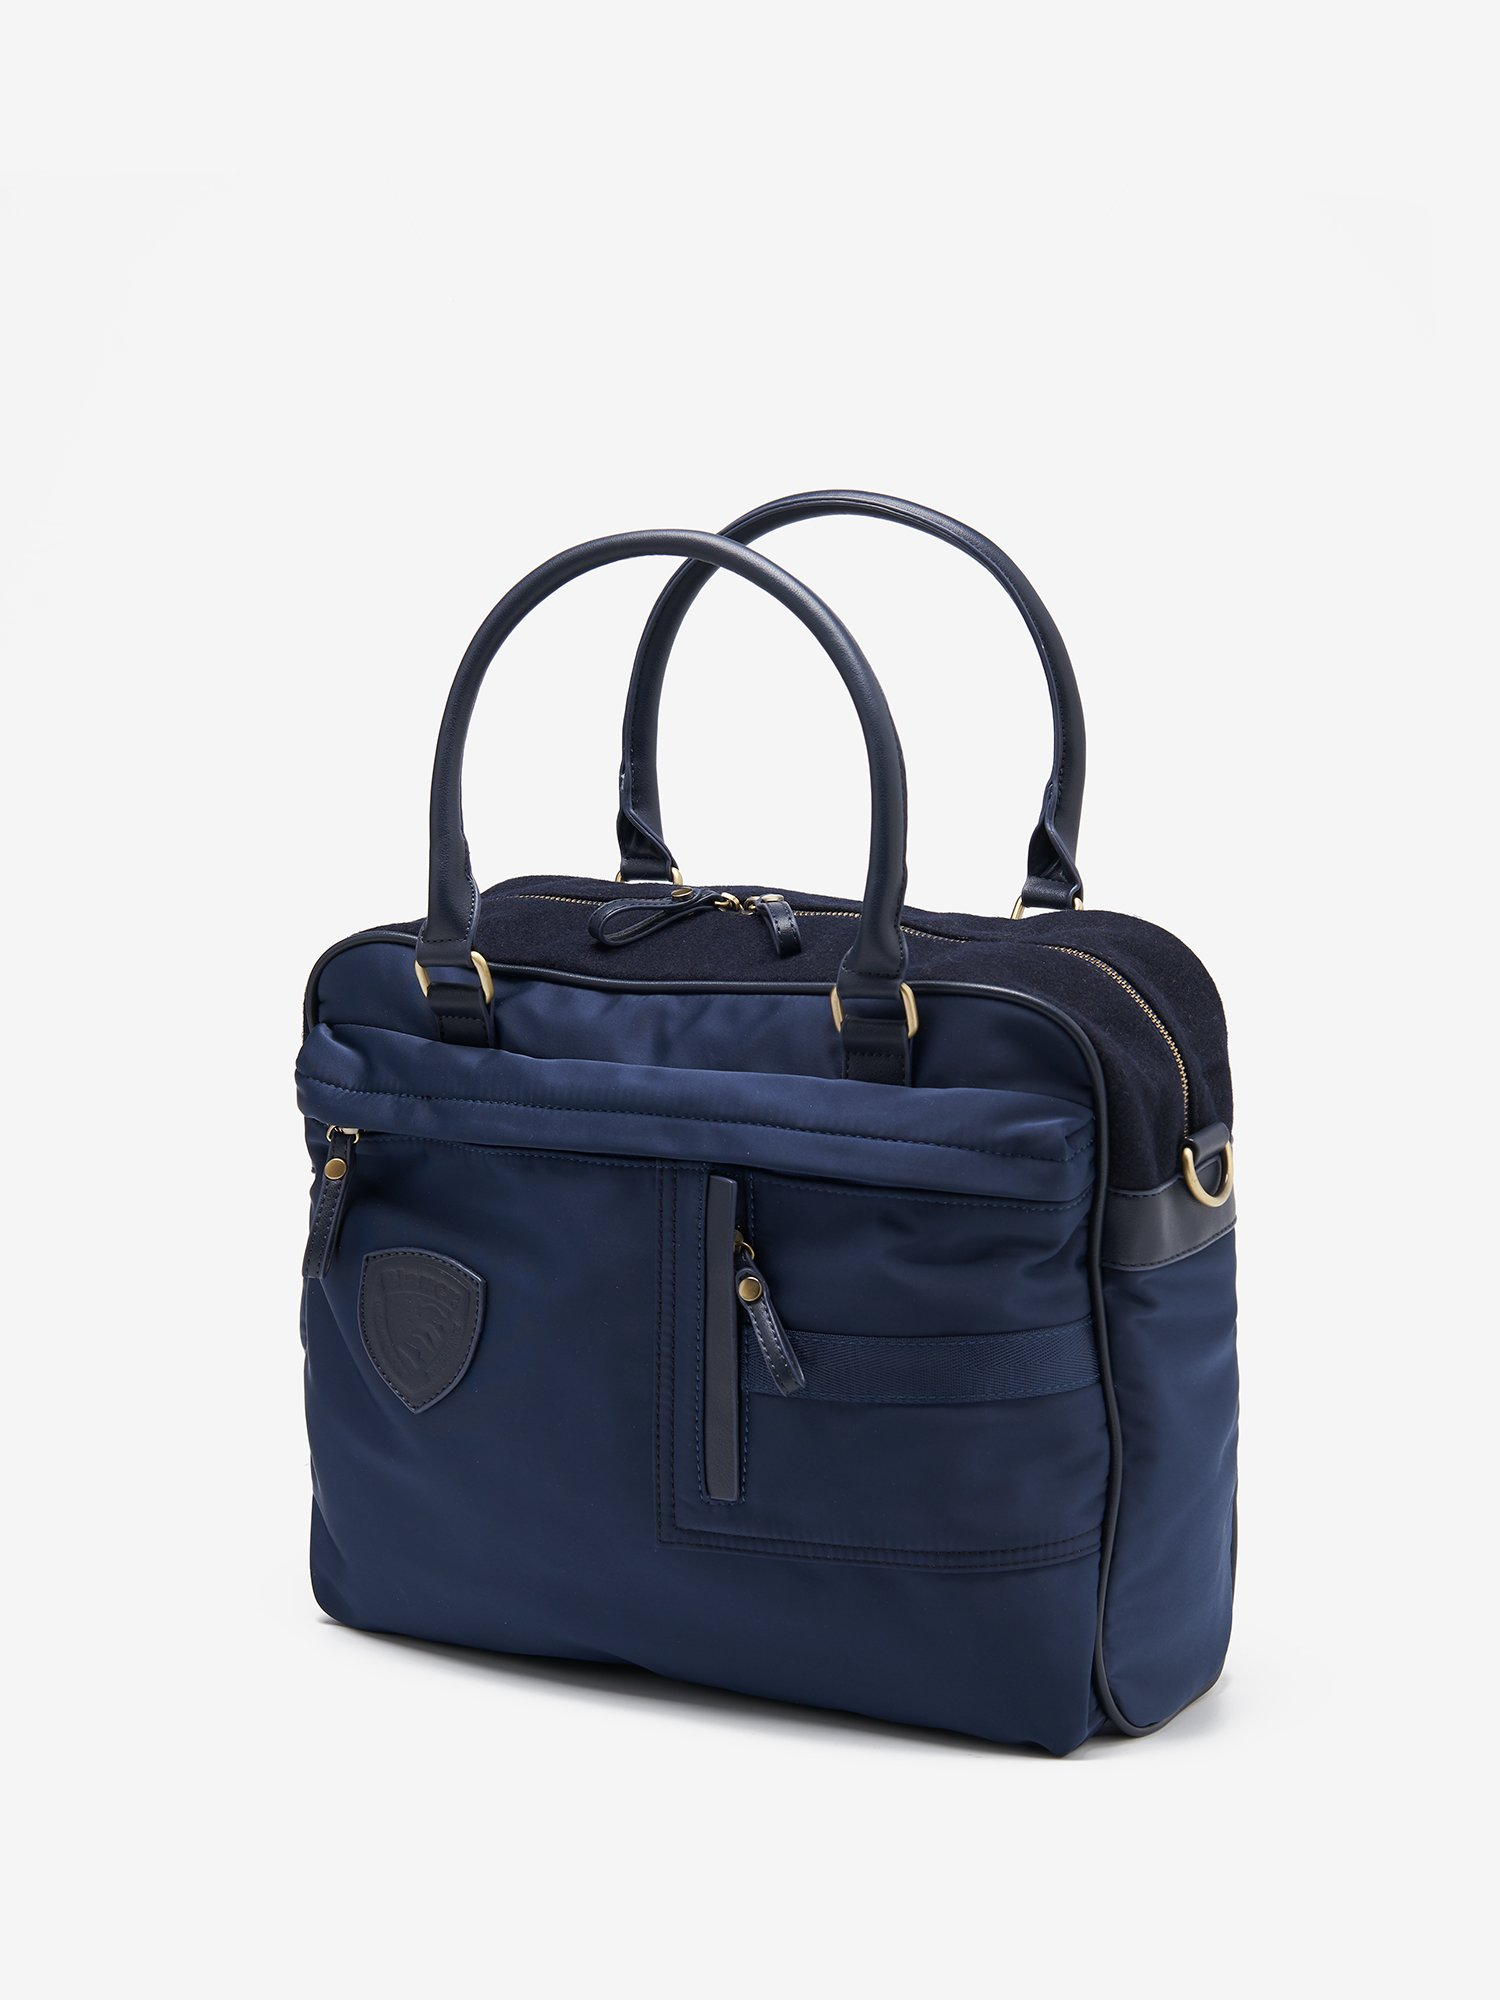 SOFT BRIEFCASE WITH TWO HANDLES - Blauer